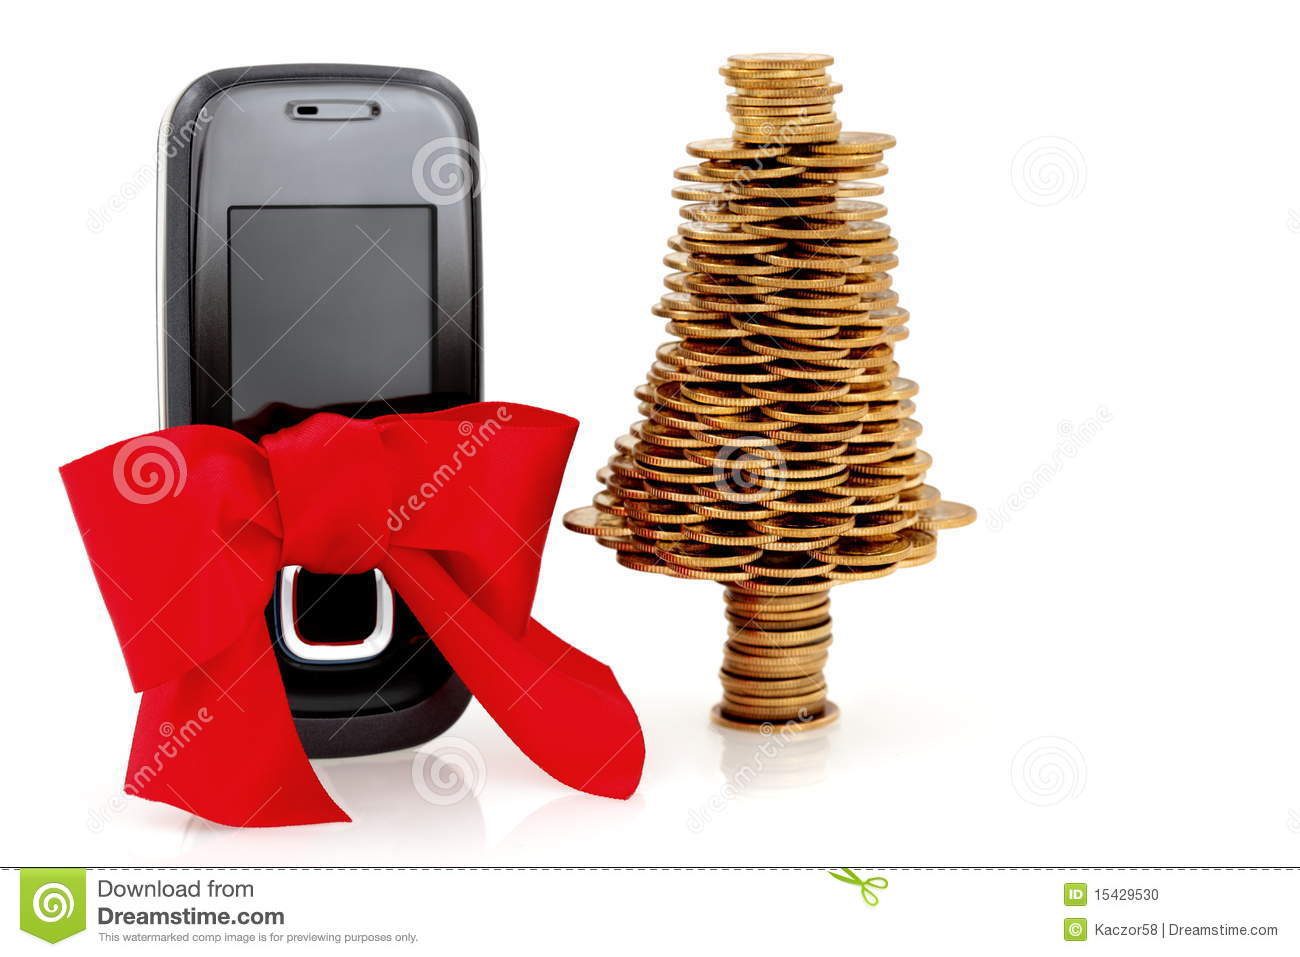 We buy gold business plan